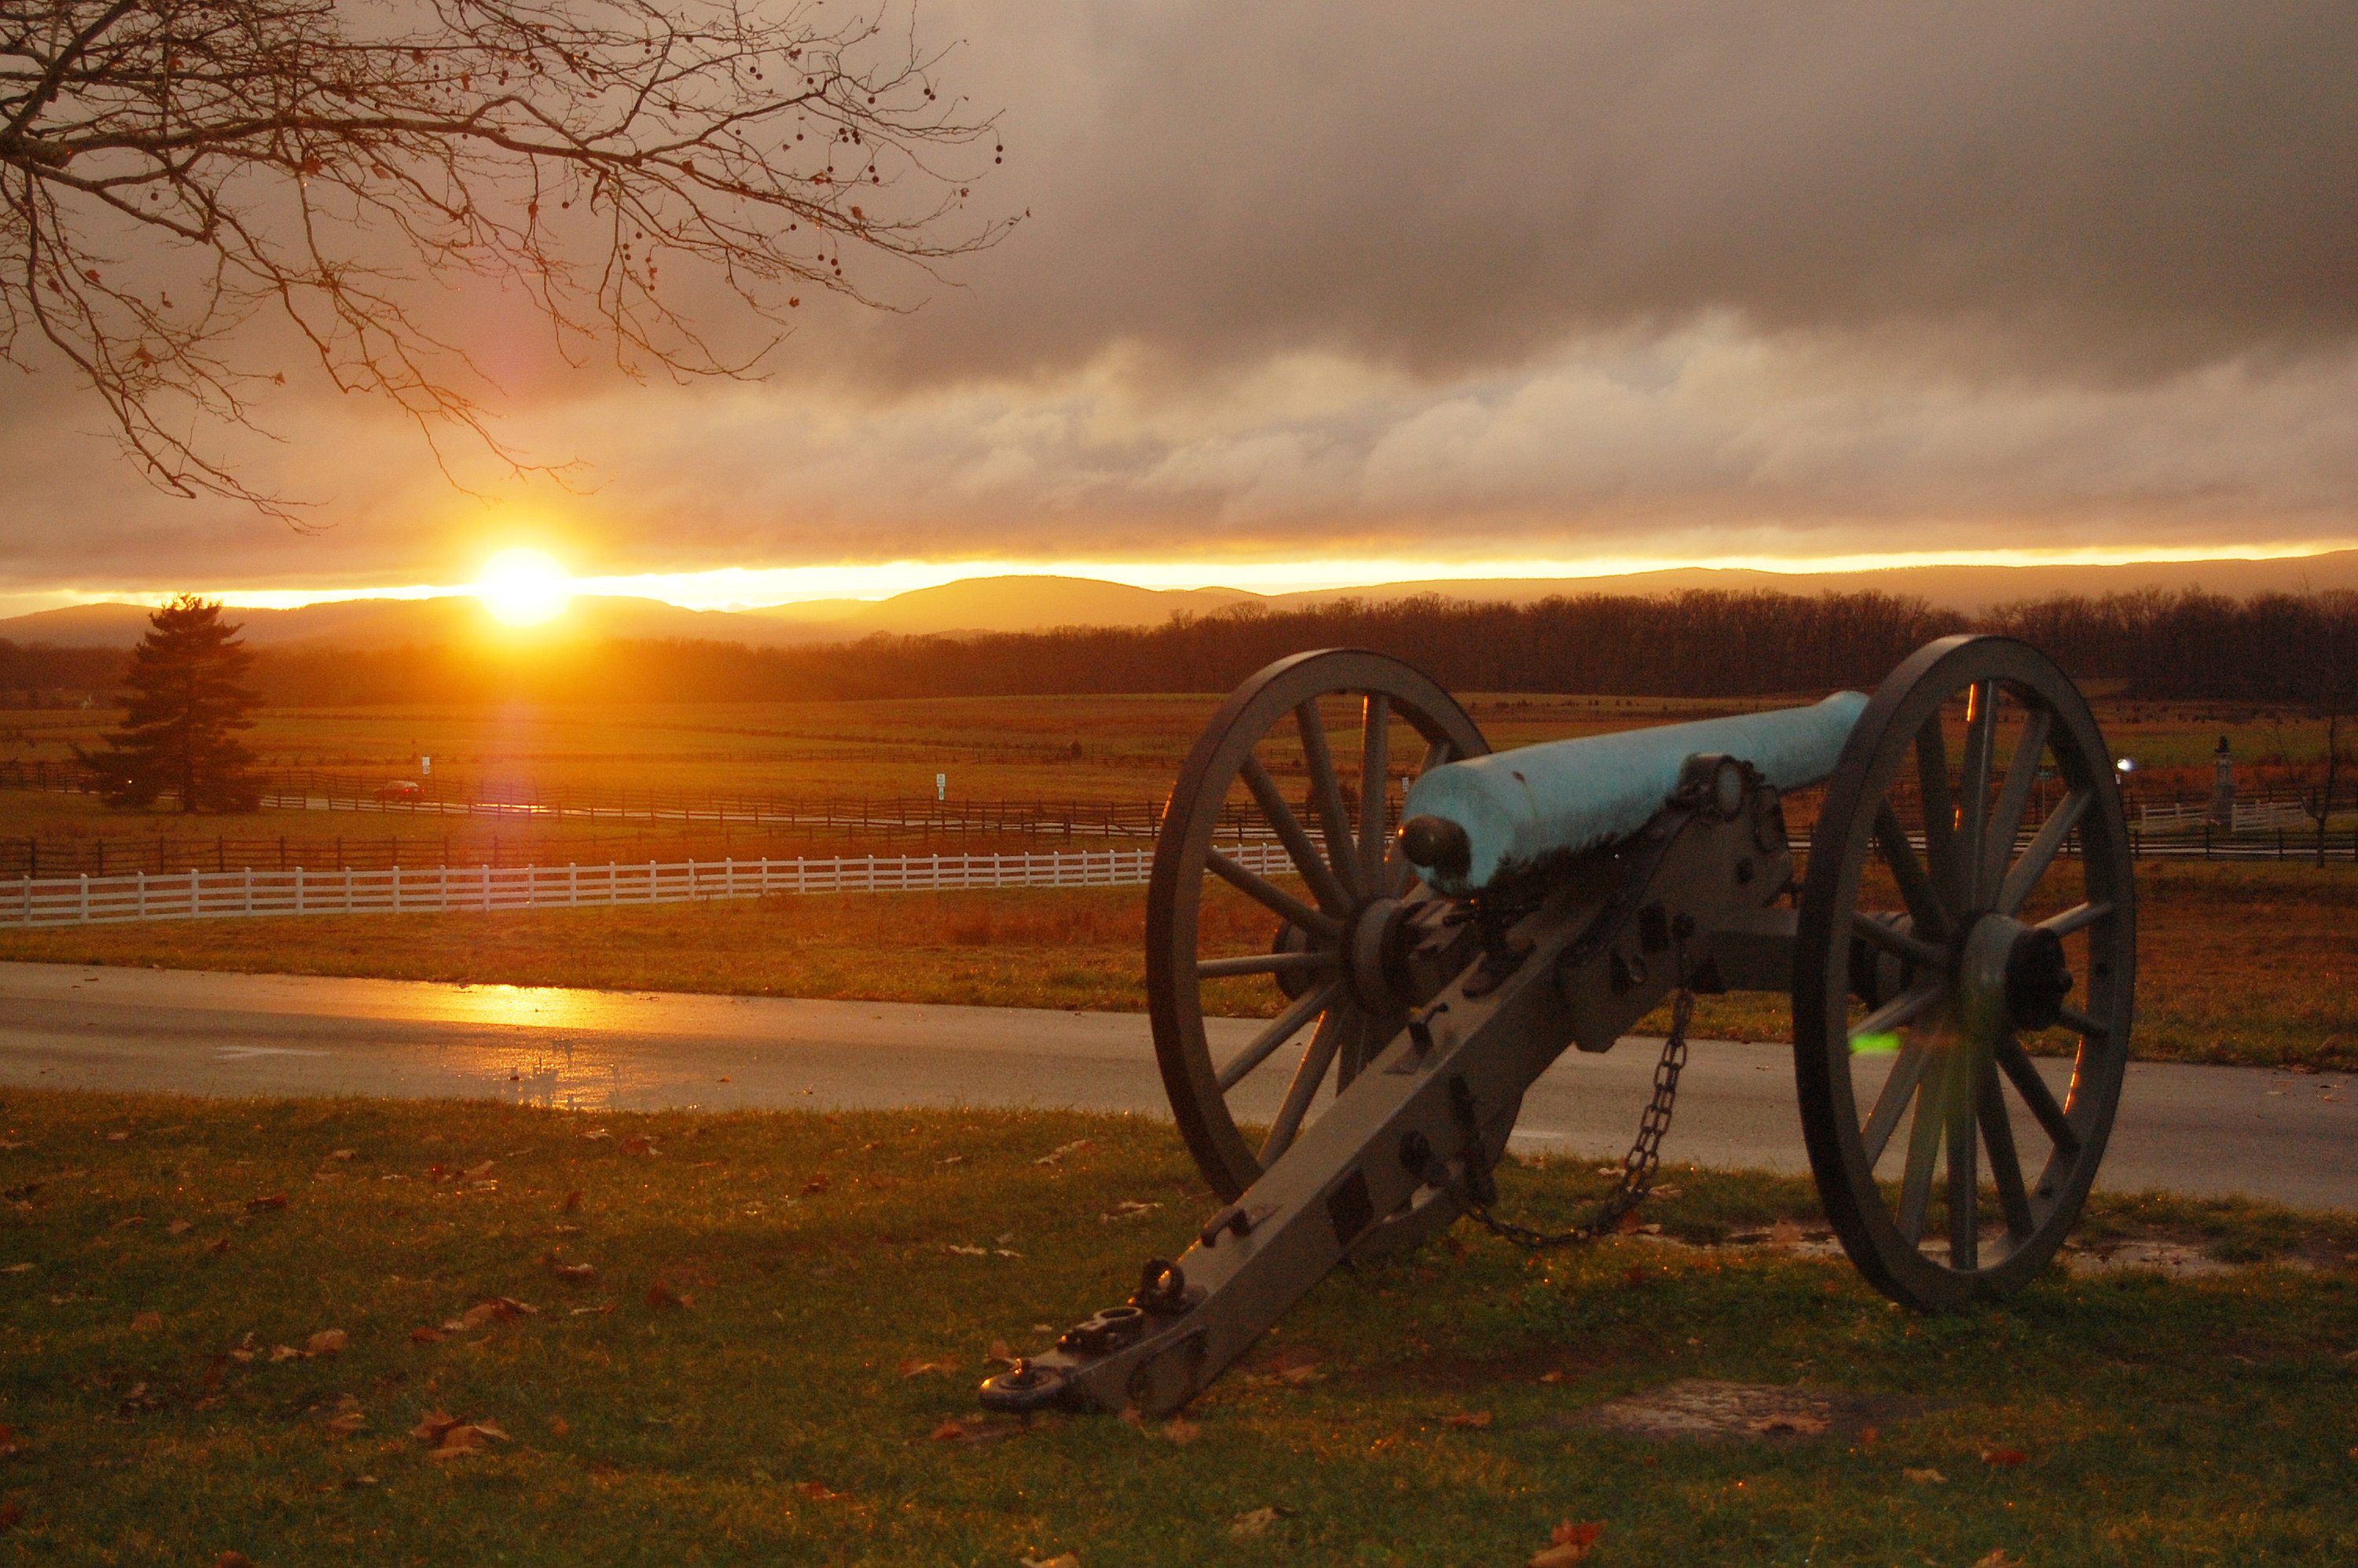 Civil War cannon overlooking the Gettysburg Battlefield at sunset